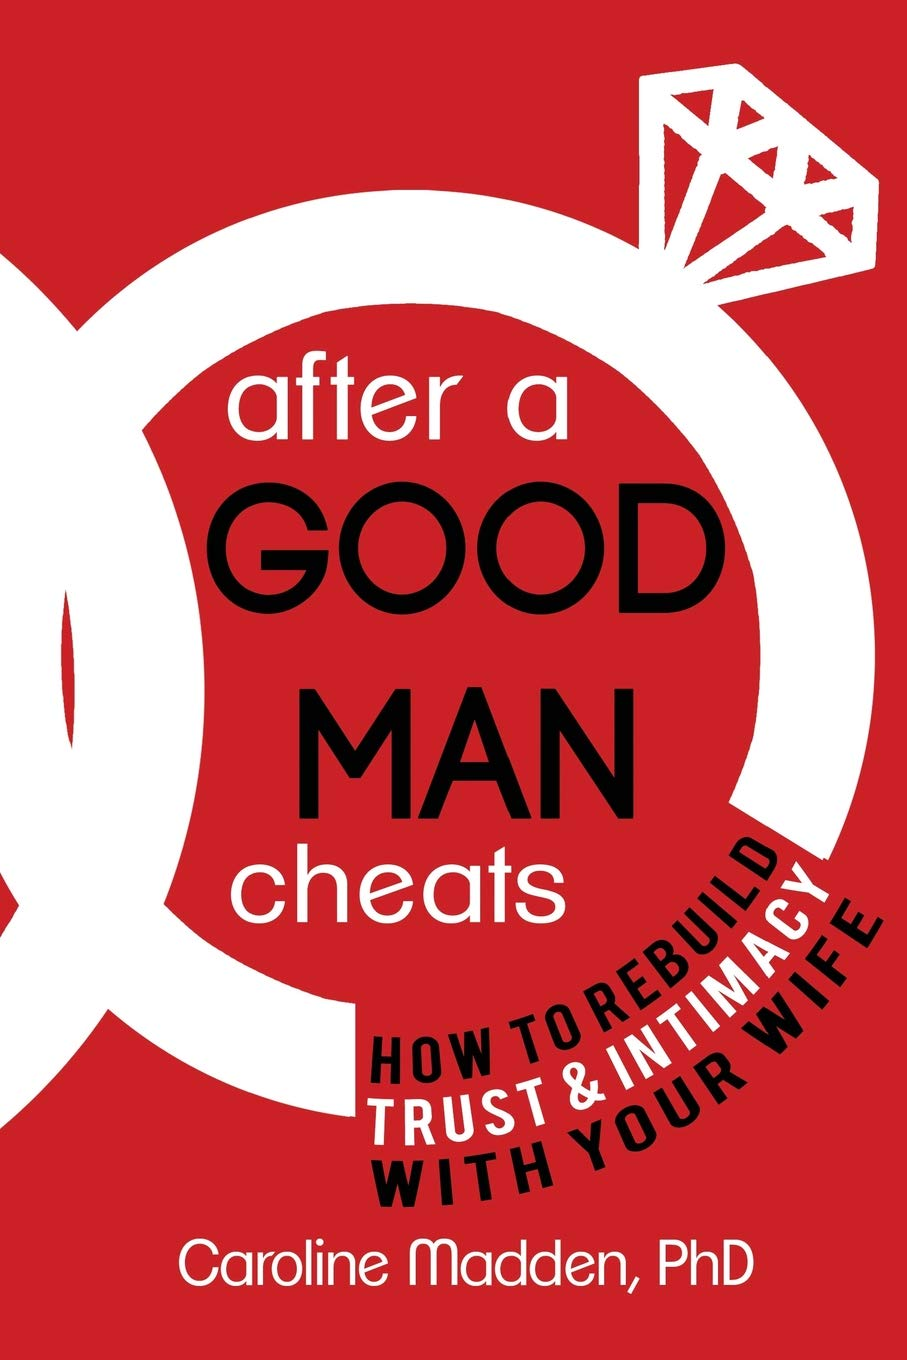 After a Good Man Cheats: How to Rebuild Trust & Intimacy